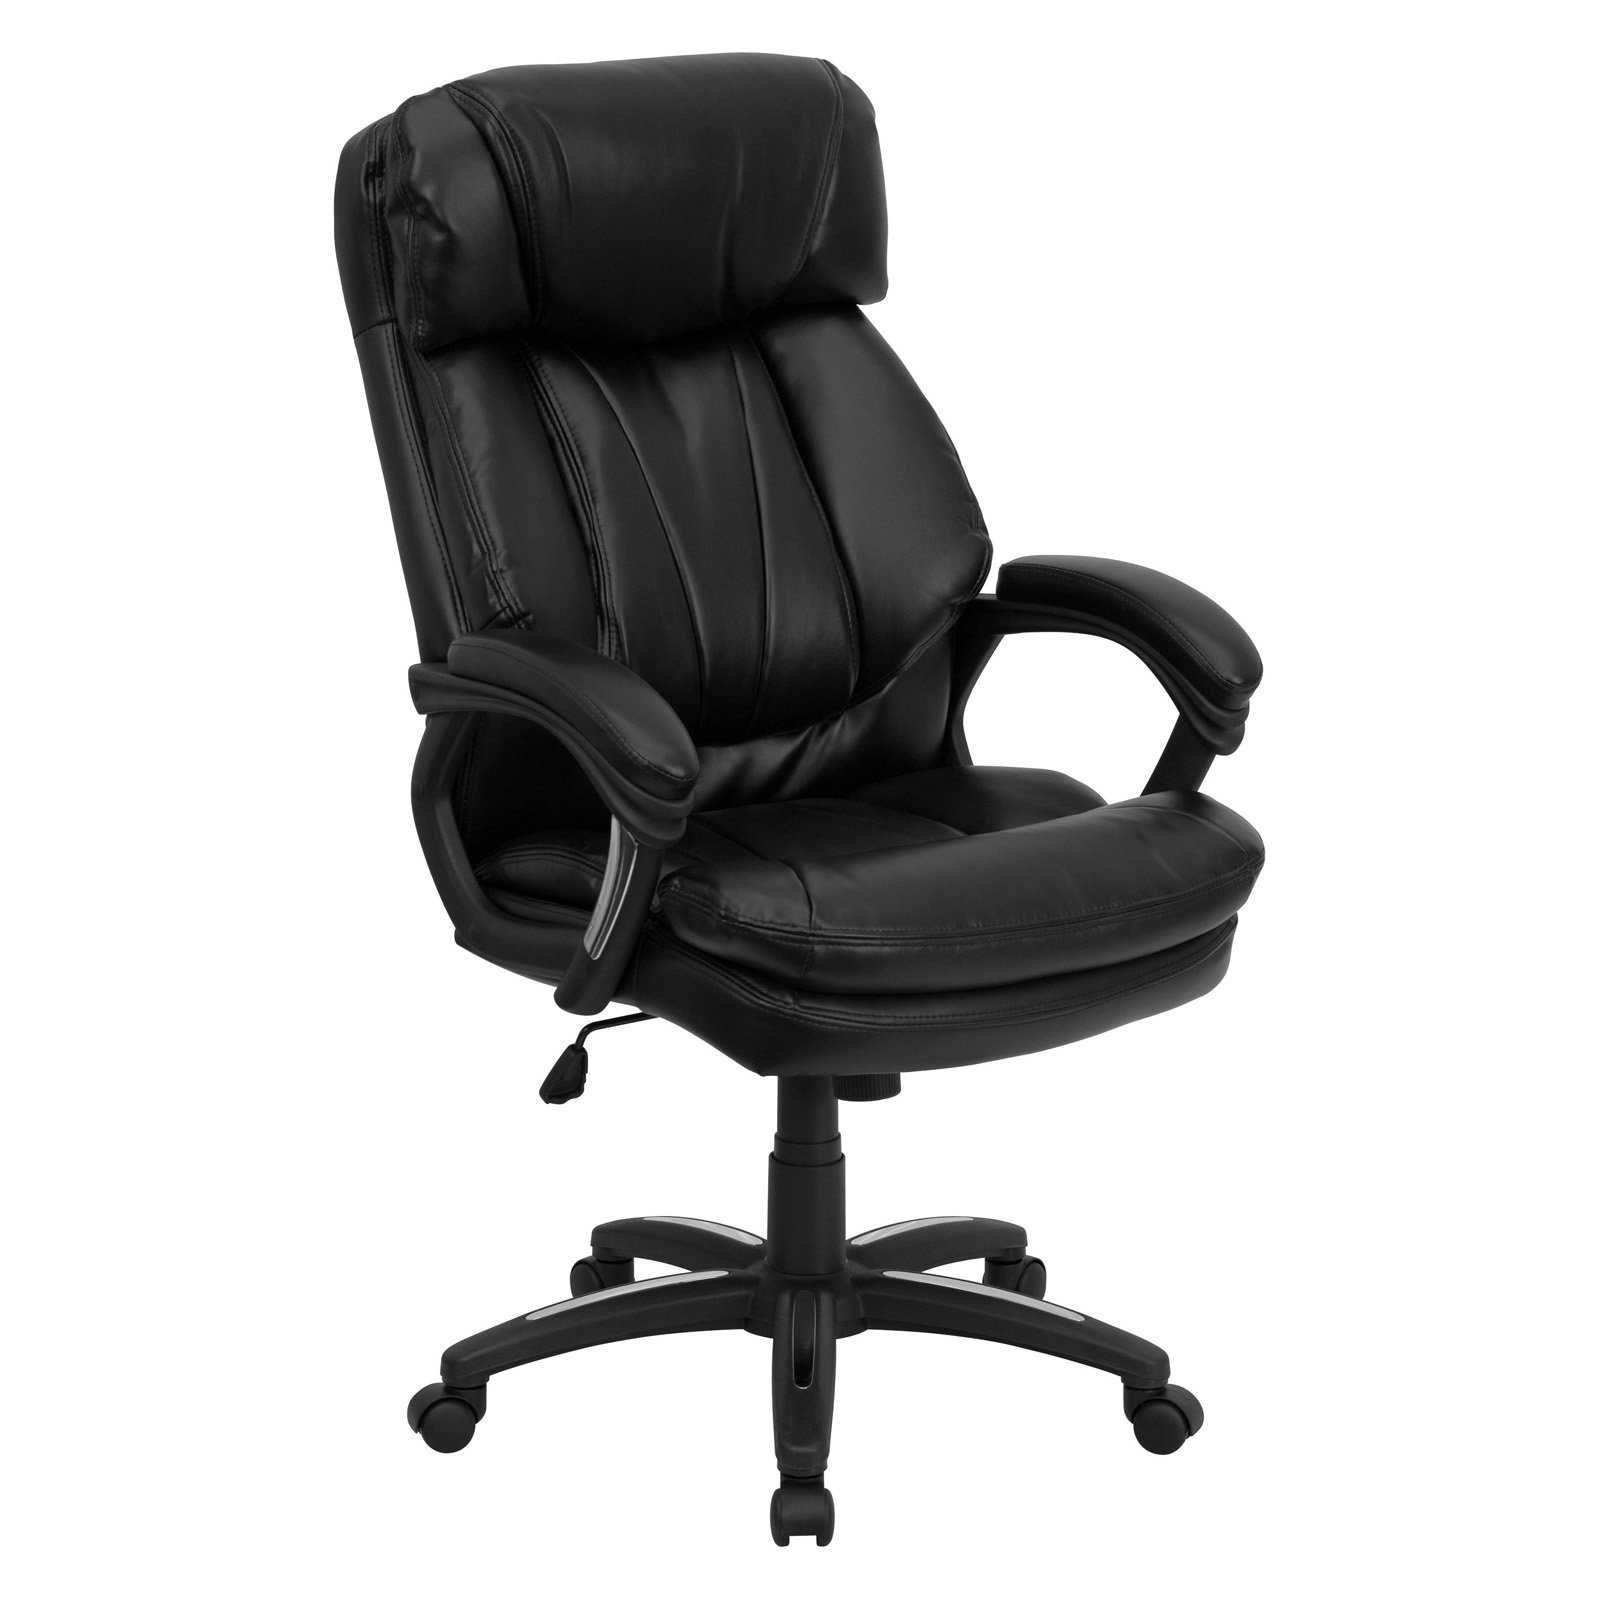 Flash Furniture Hercules High Back Executive Office Chair, Black